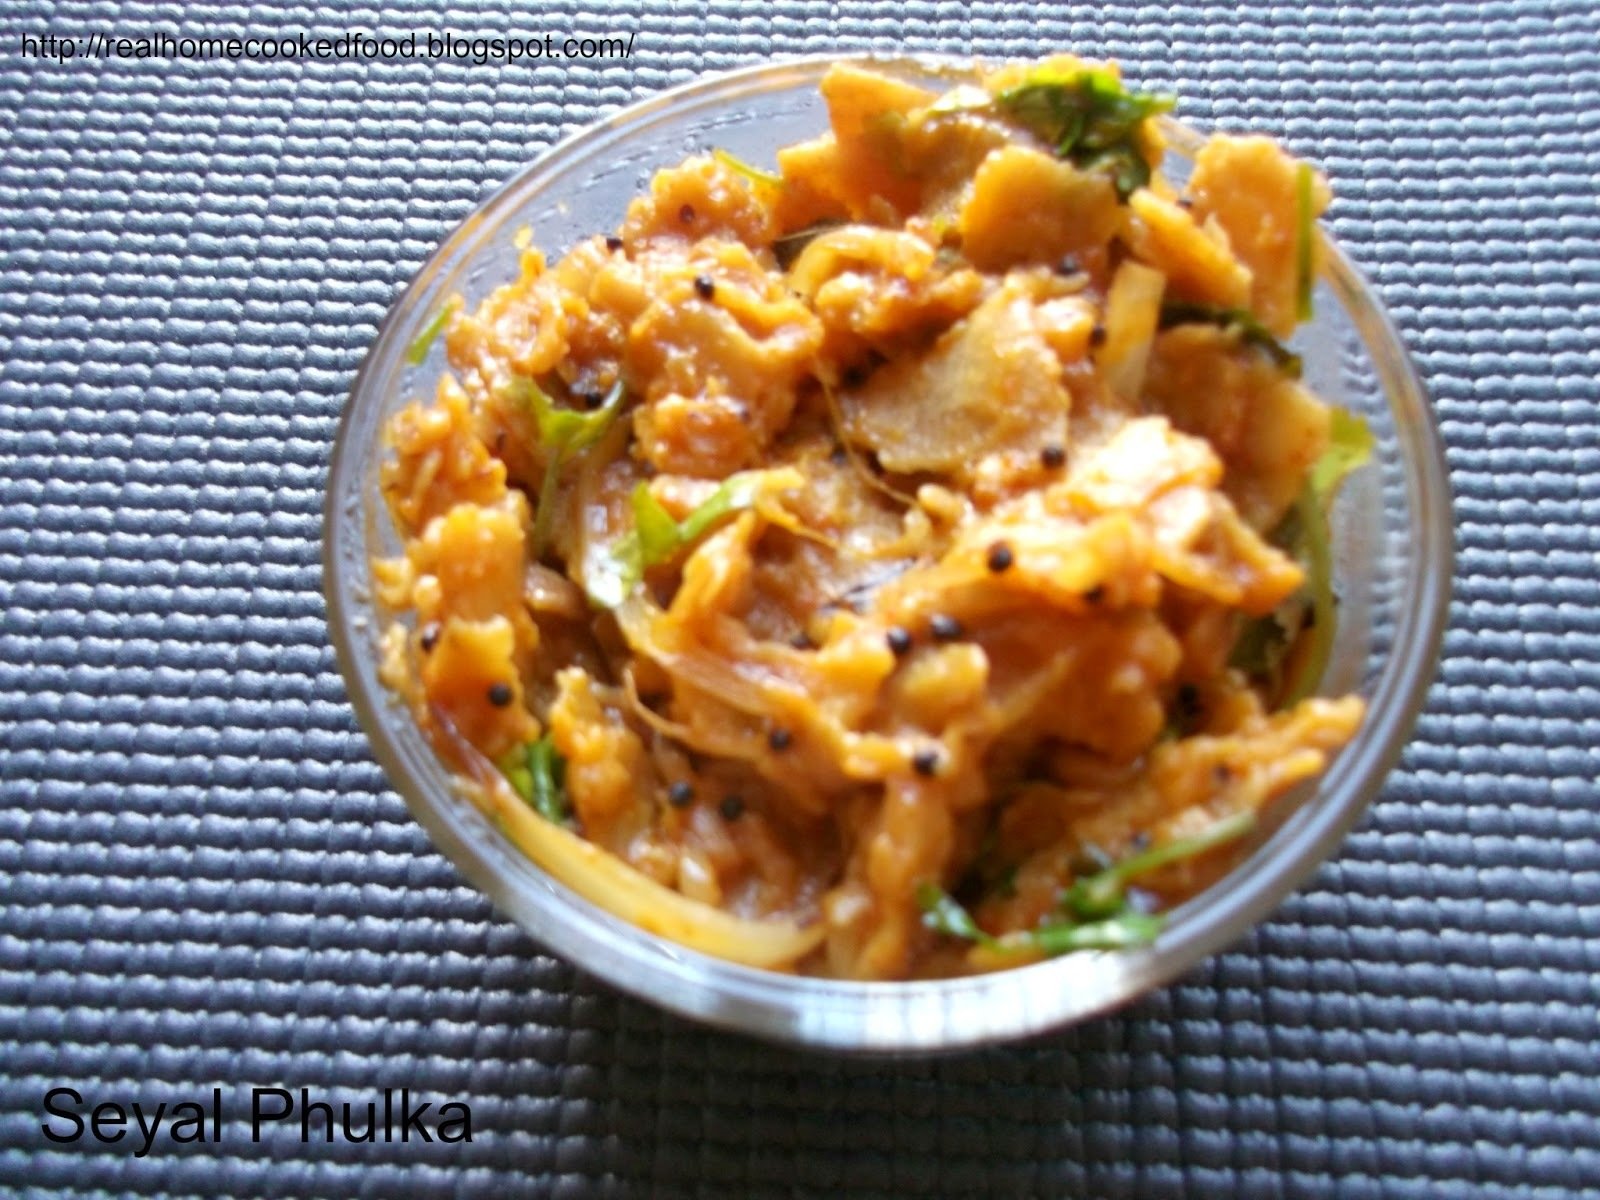 Seyal Phulka – Leftover rotis in tomato garlic gravy